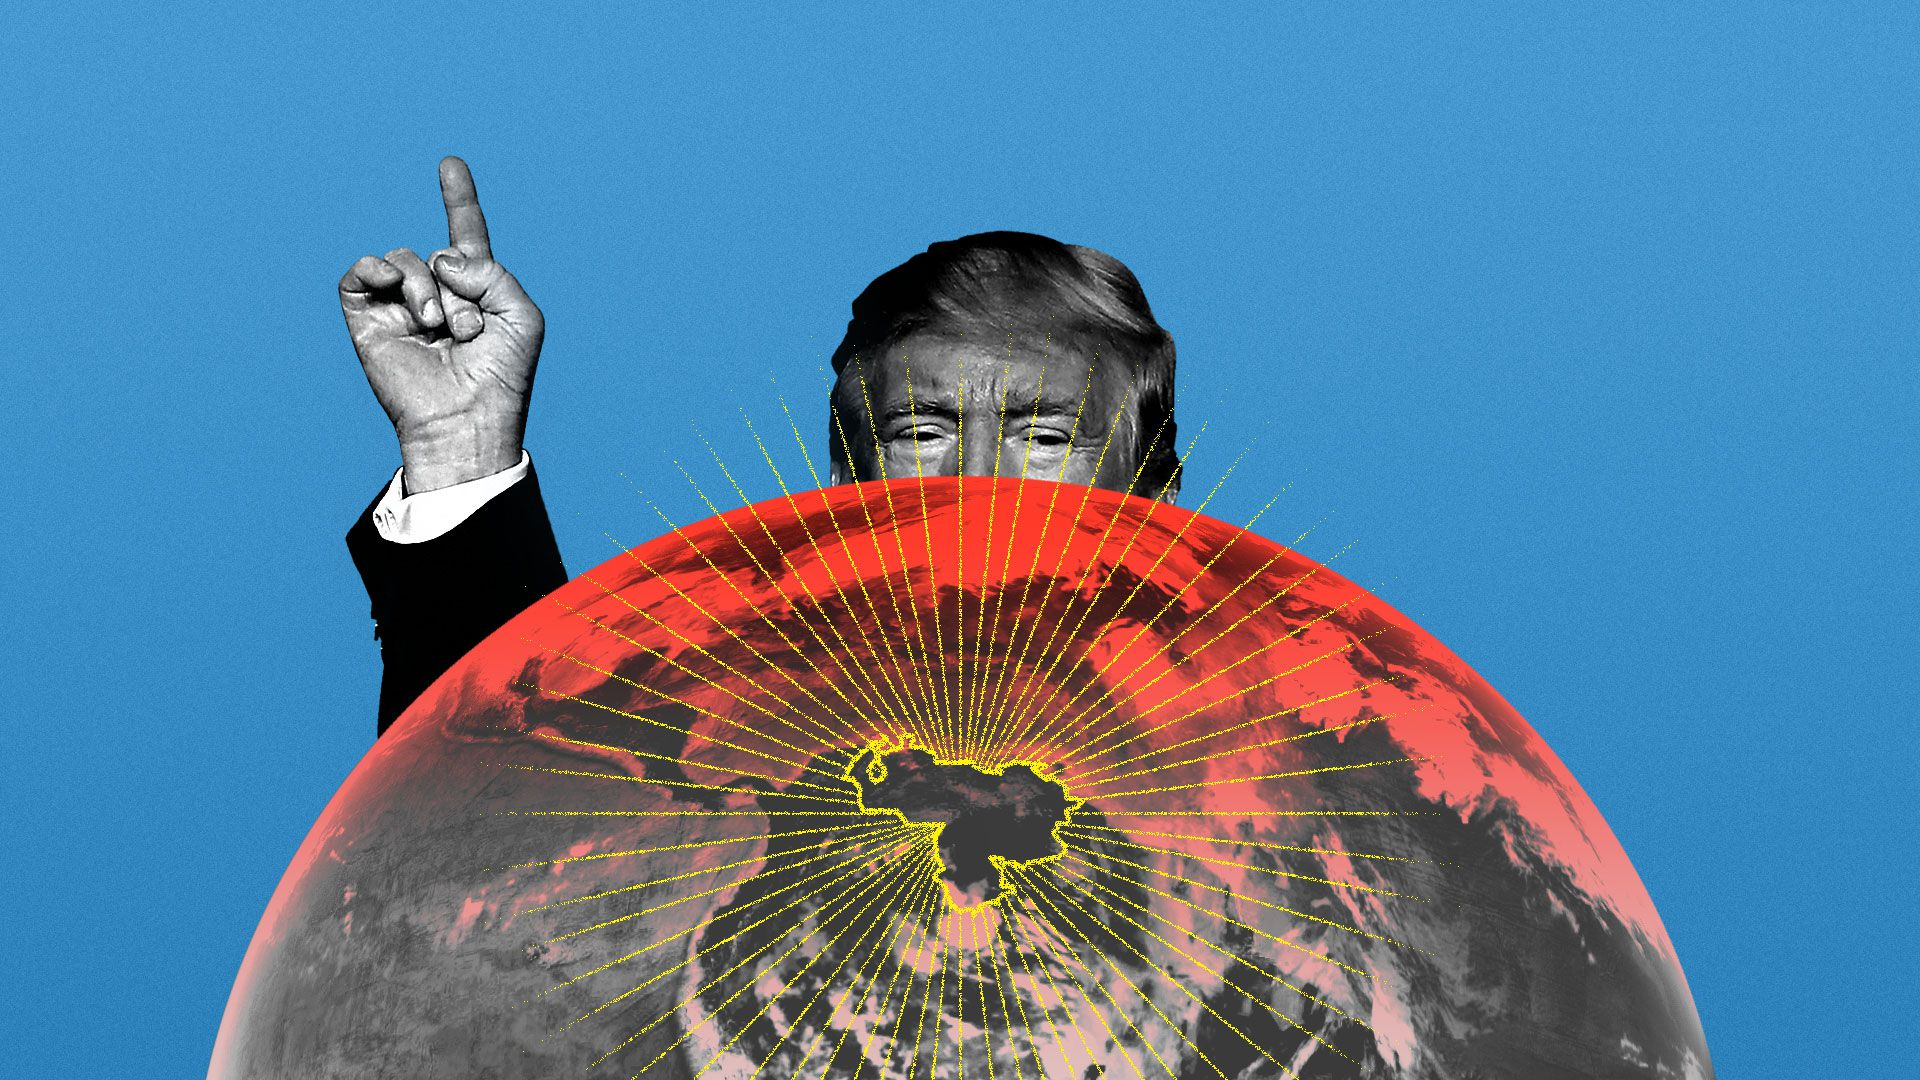 Trump peering from behind a globe and wagging his finger at Venezuela